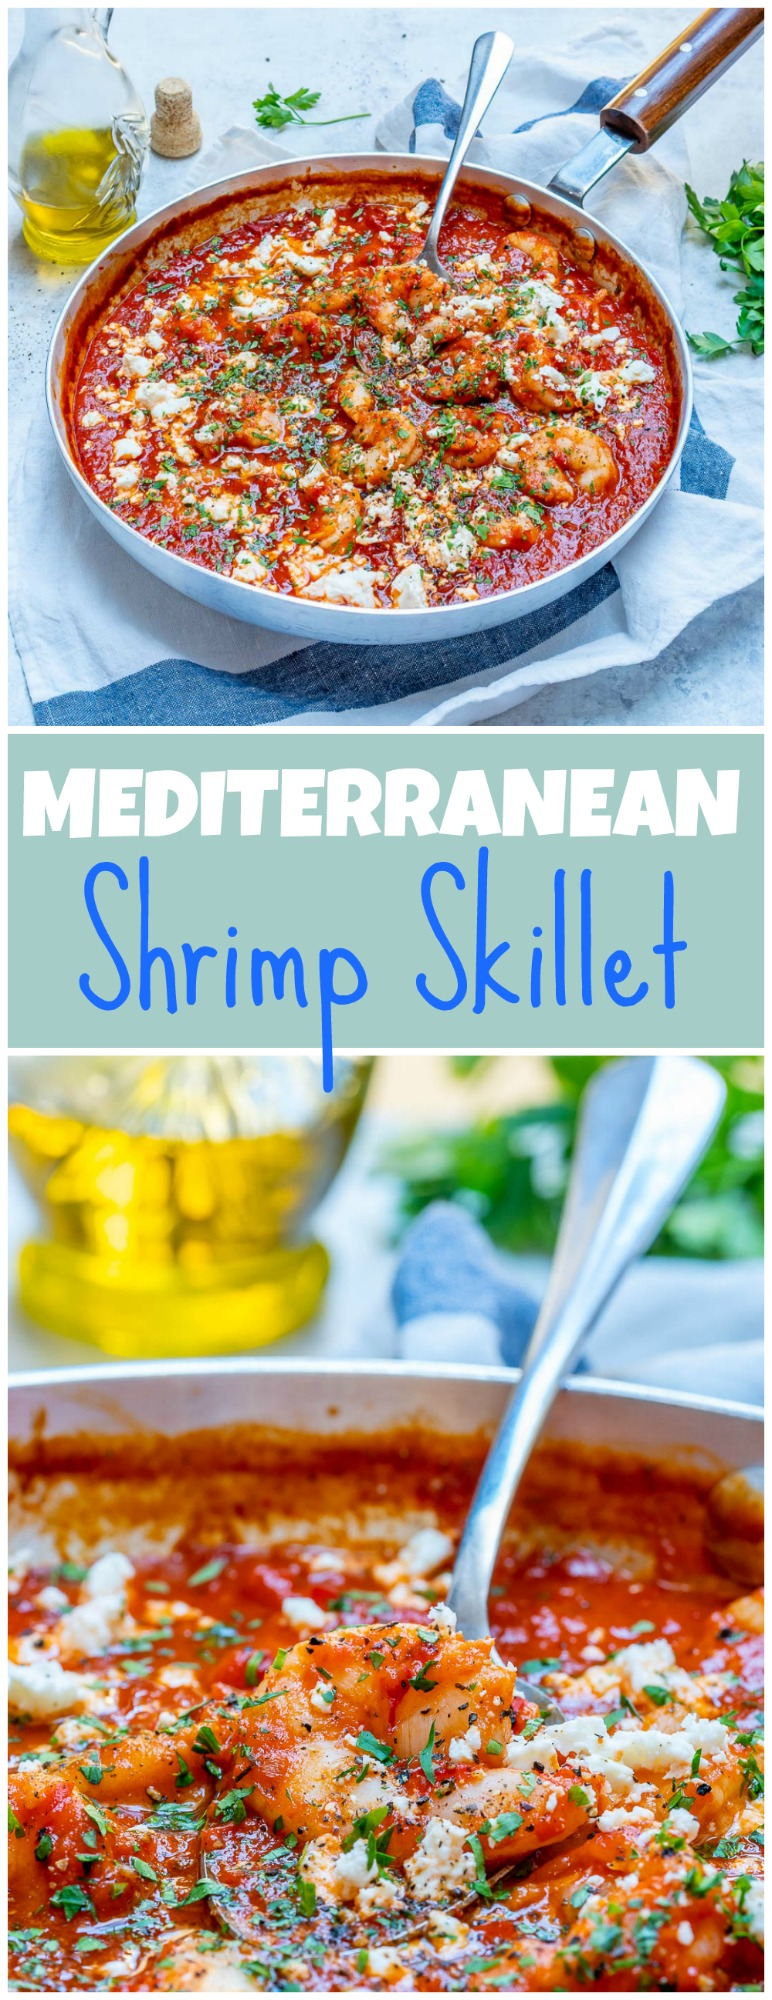 Clean eating diet Mediterranean Shrimp Skillet